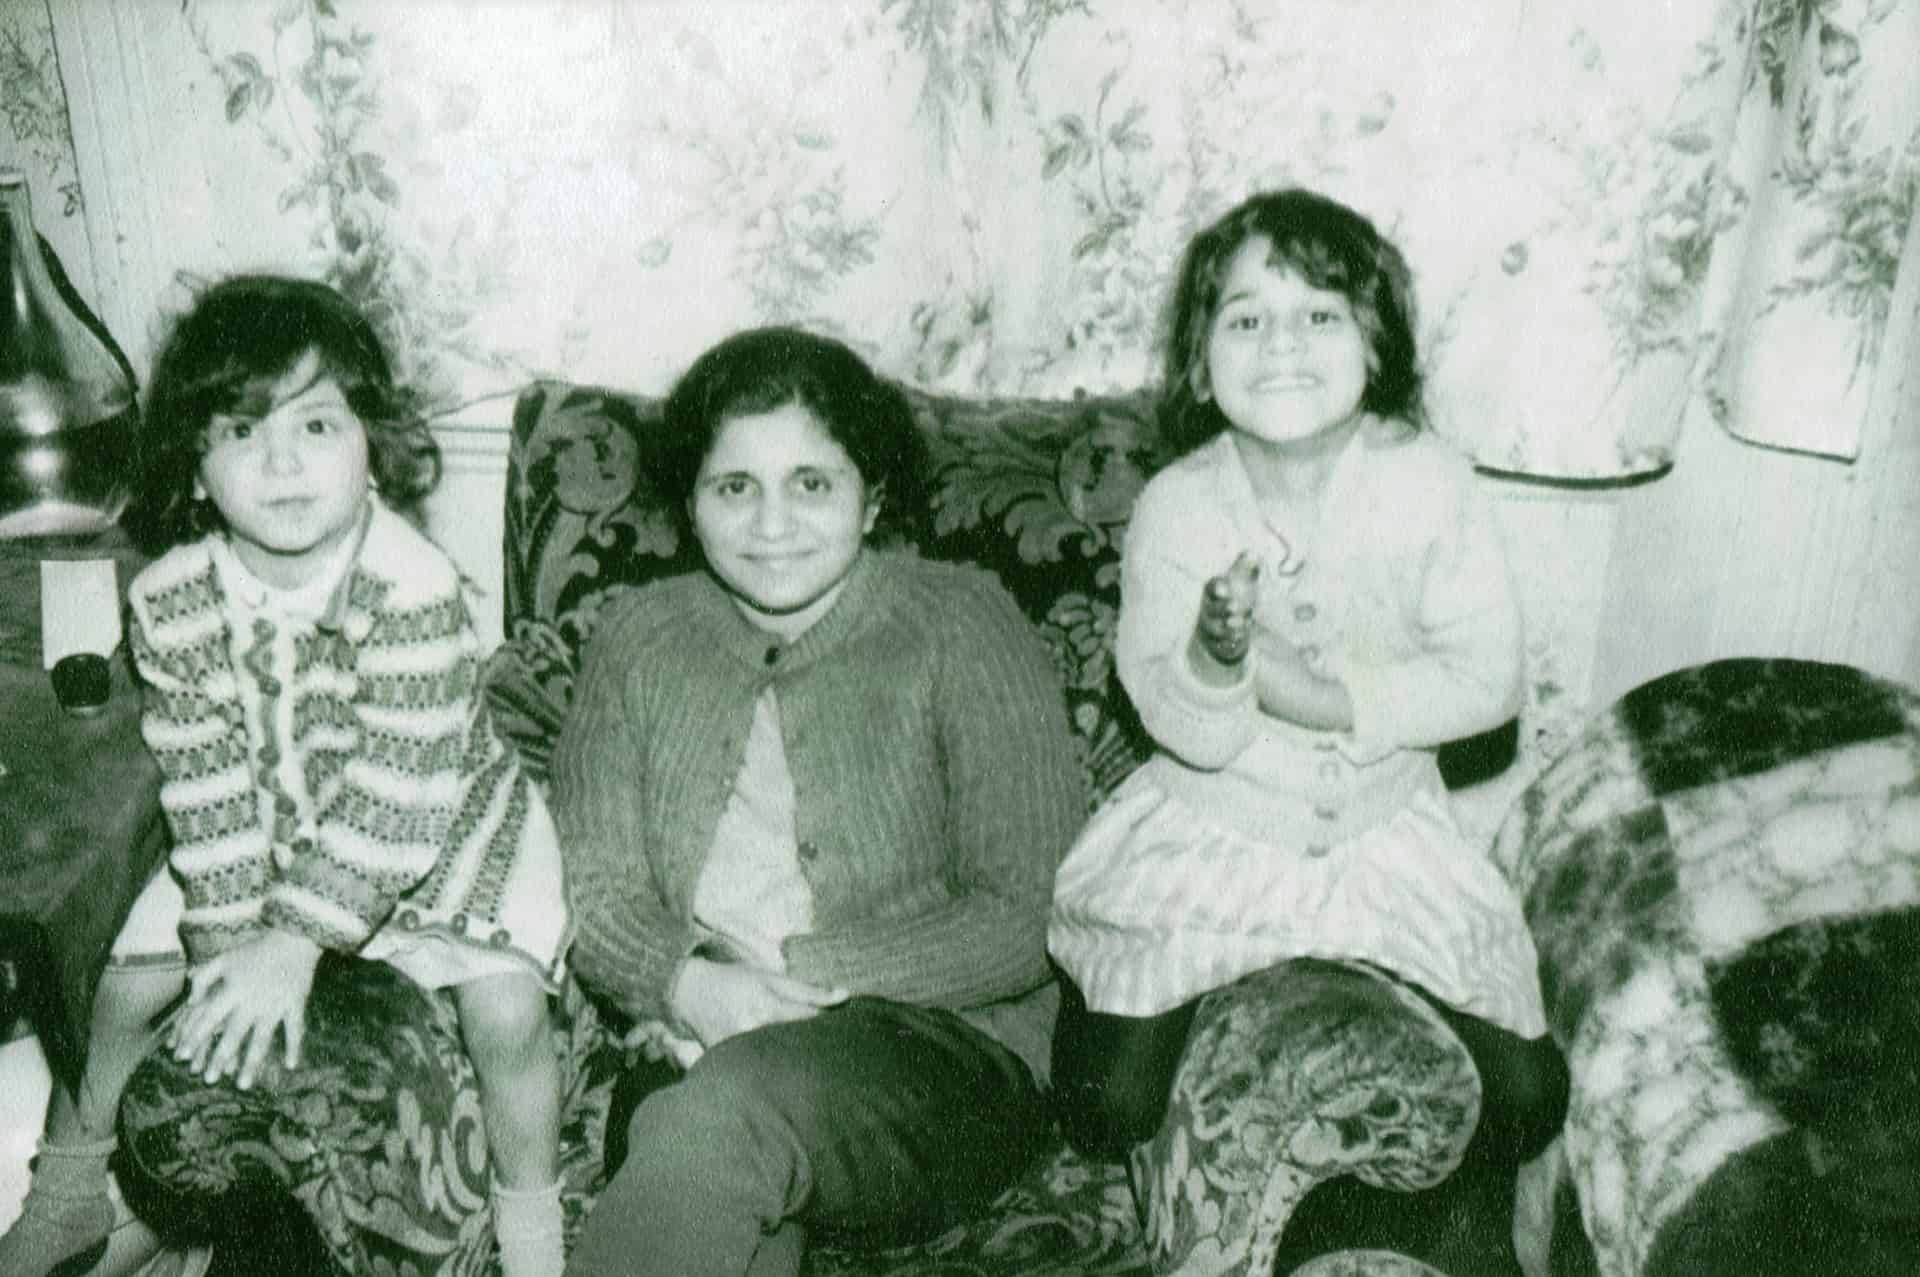 Marianne (left) with her mother and sister Vee in London in the 1960s.